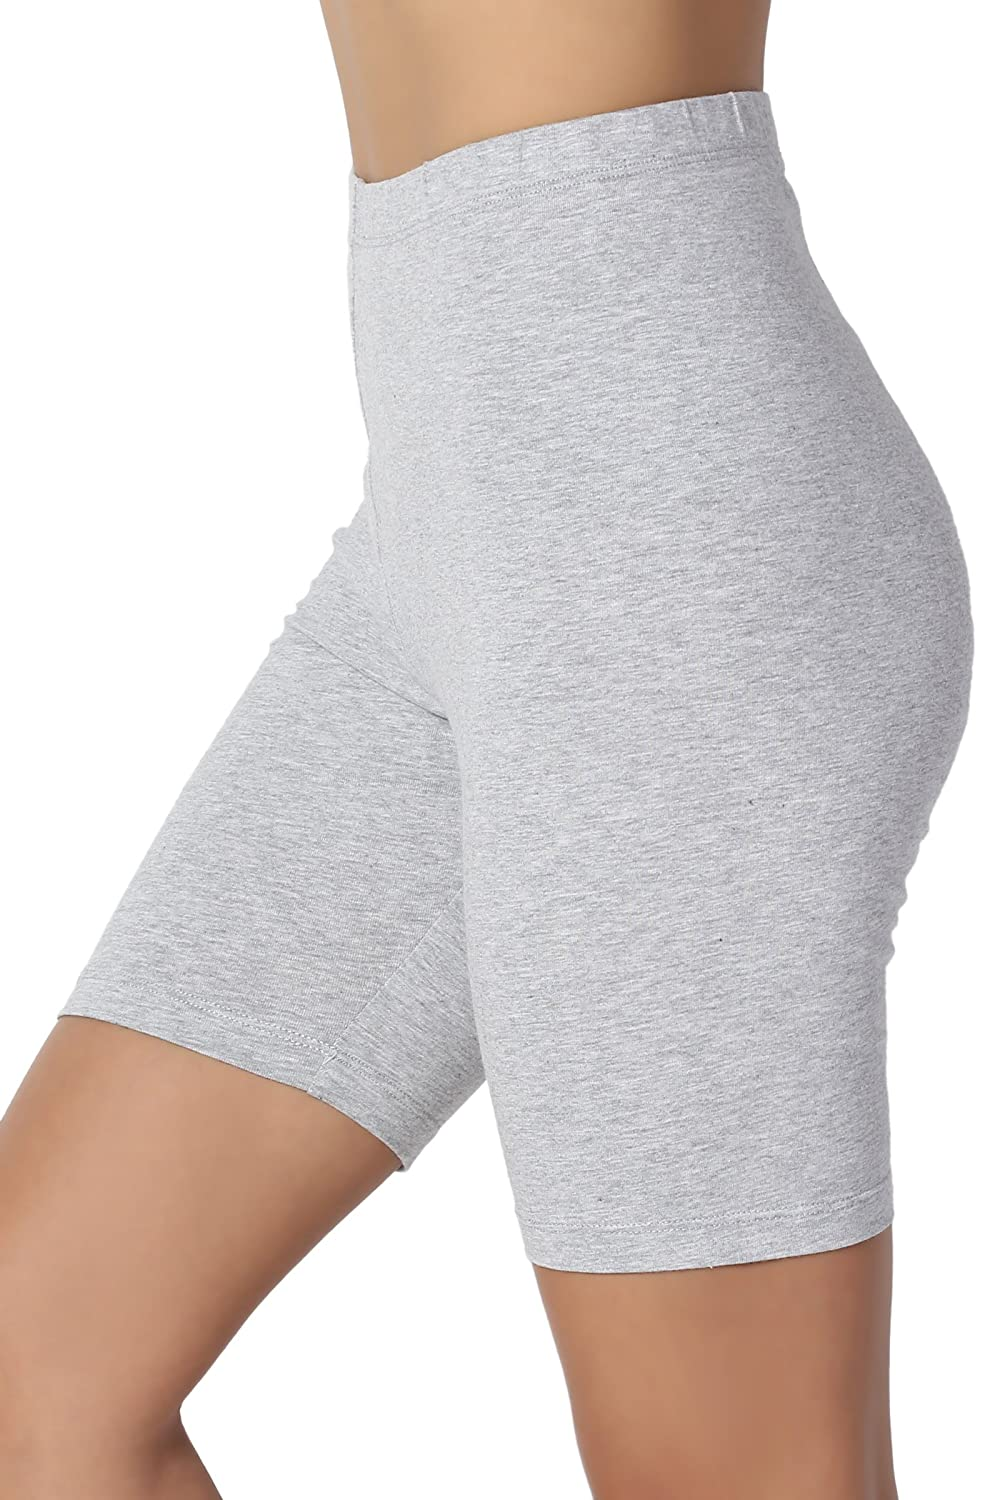 TheMogan Women's Mid Thigh Cotton High Waist Active Short Leggings Heather Grey M OP1802P_HGR_3M